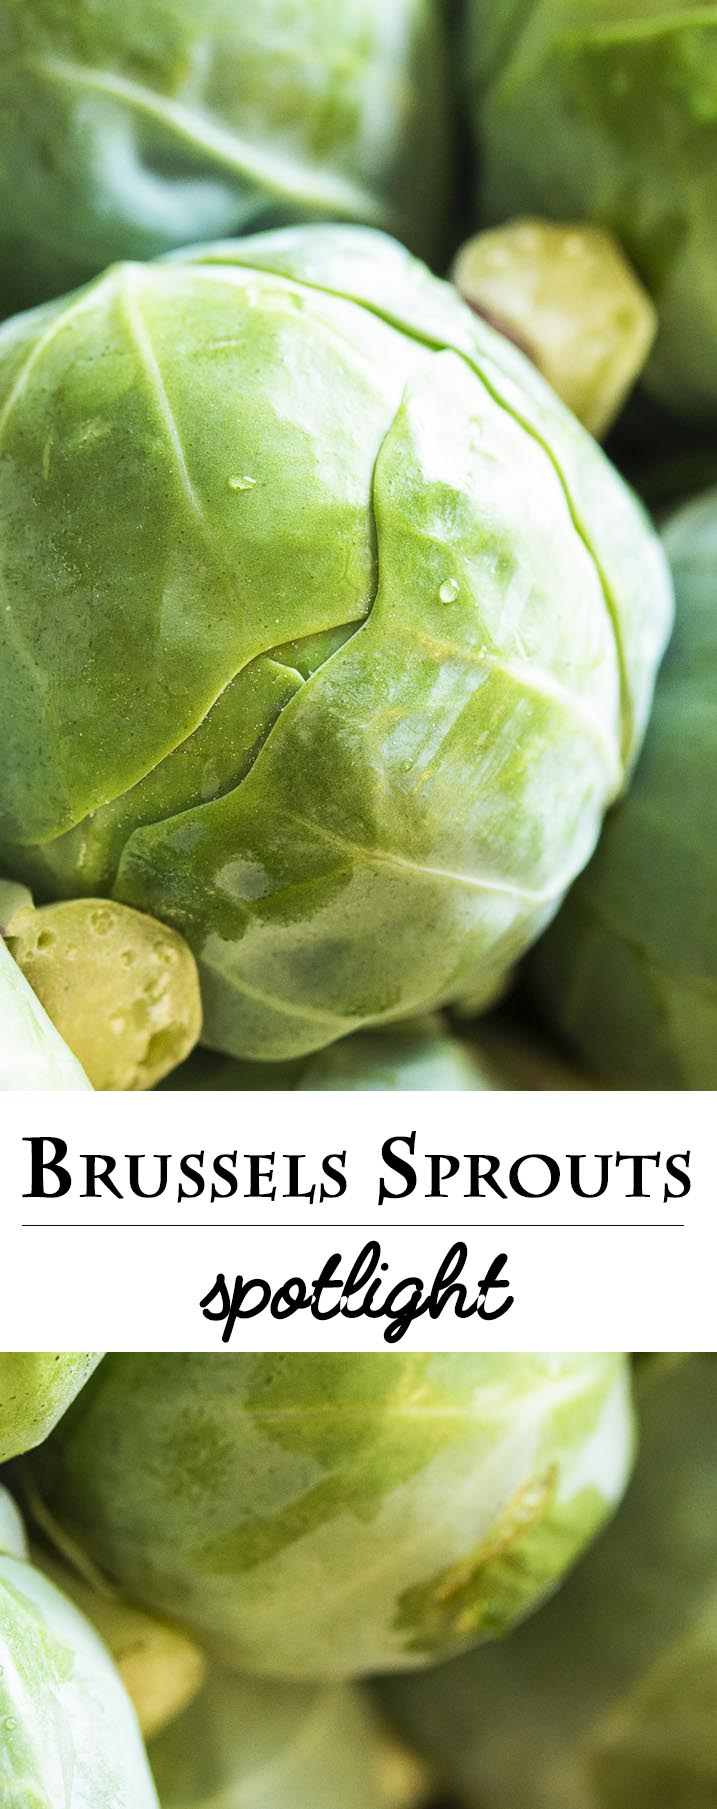 This Brussels sprouts spotlight tells you everything you wanted to know about Brussels sprouts. How to cook them, where they come from, how they taste, and more! | justalittlebitofbacon.com